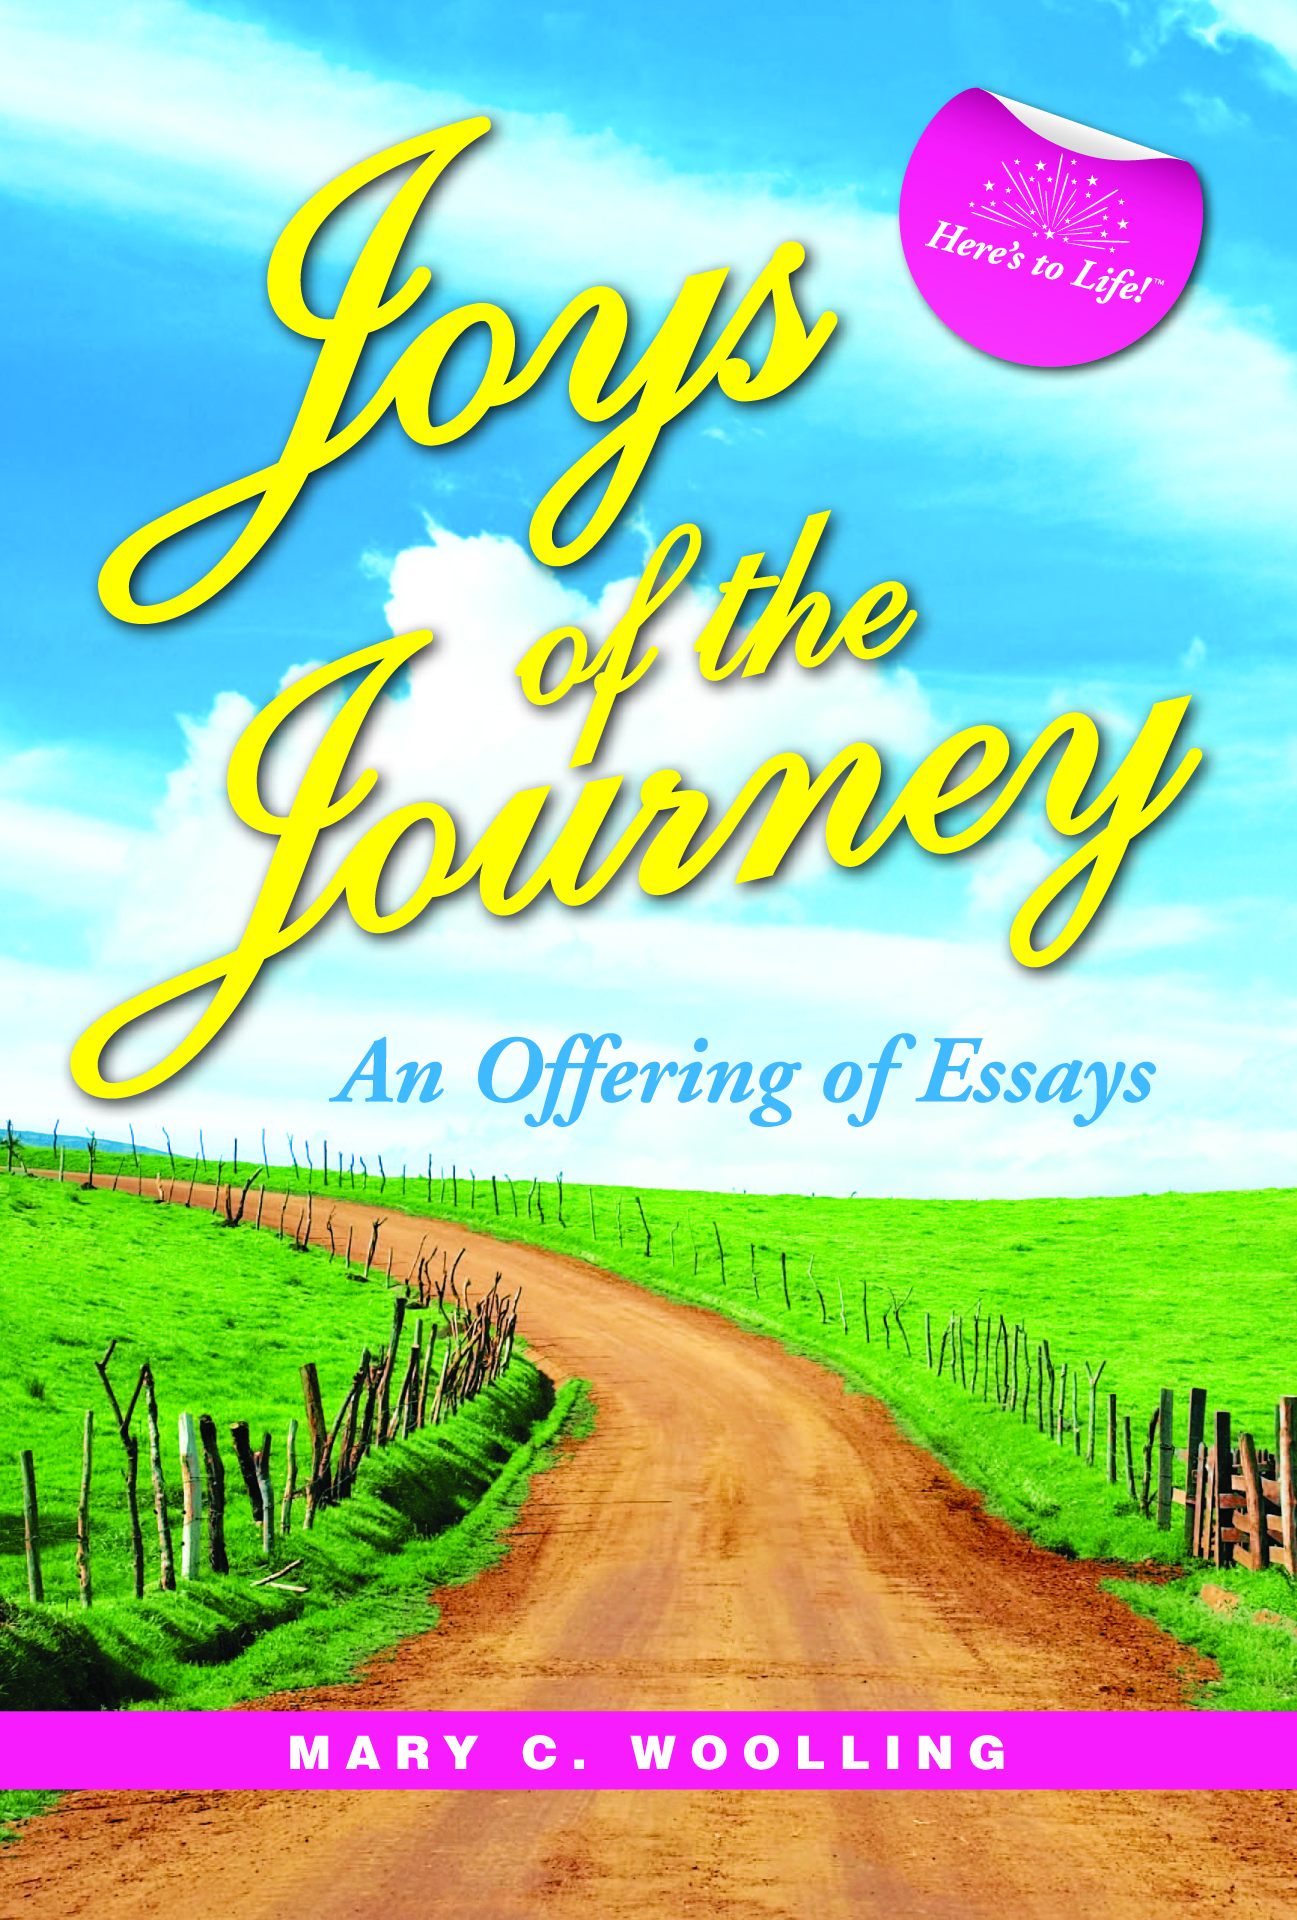 communi qu eacute  joys of the journey is a collection of inspirational essays and sentimental stories showcasing the positives of life included are tales of the beauty of